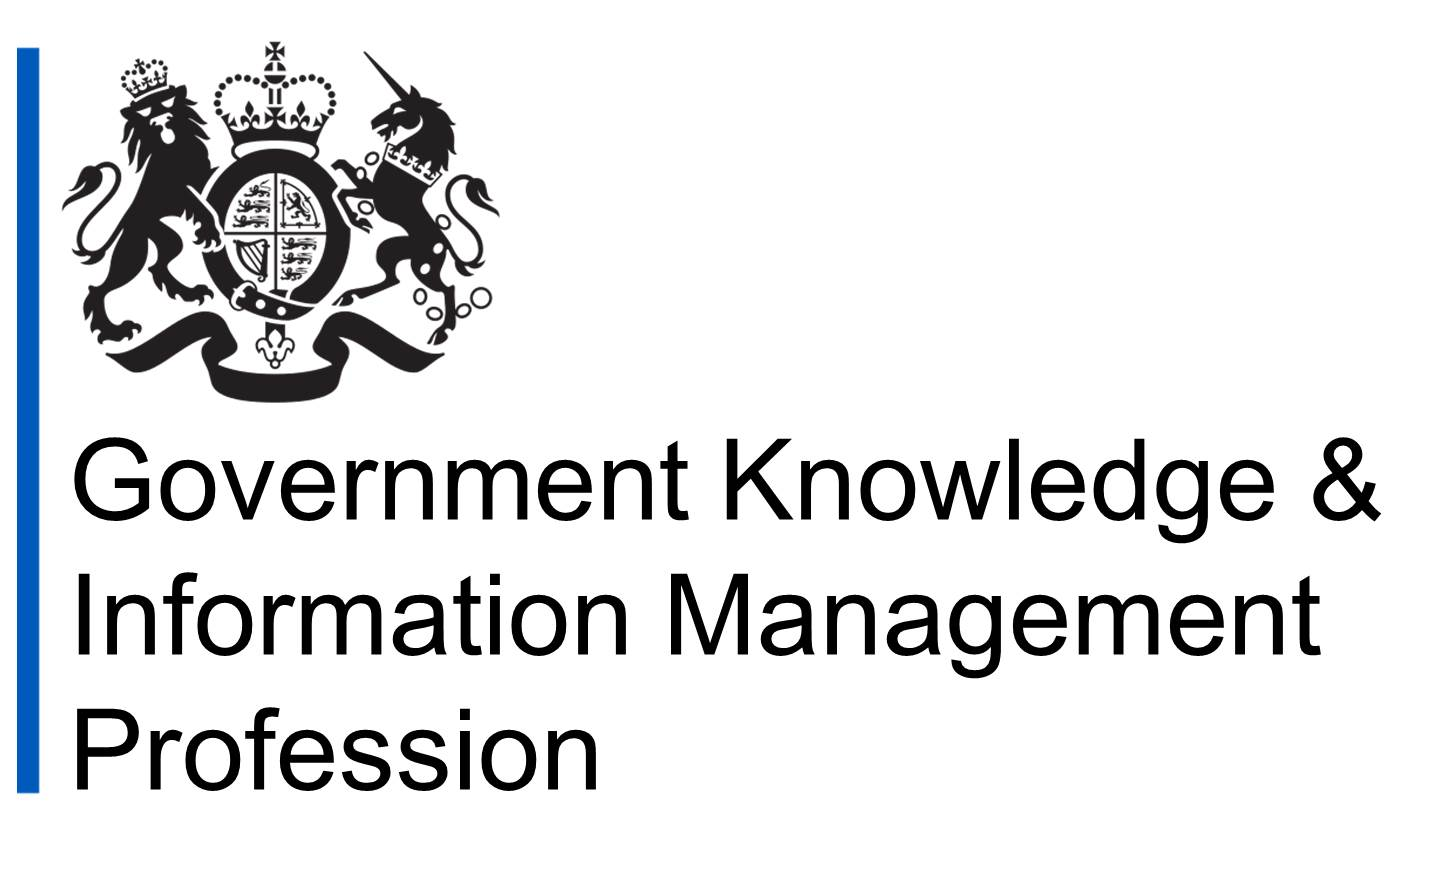 Government Knowledge and Information Management Profession Logo